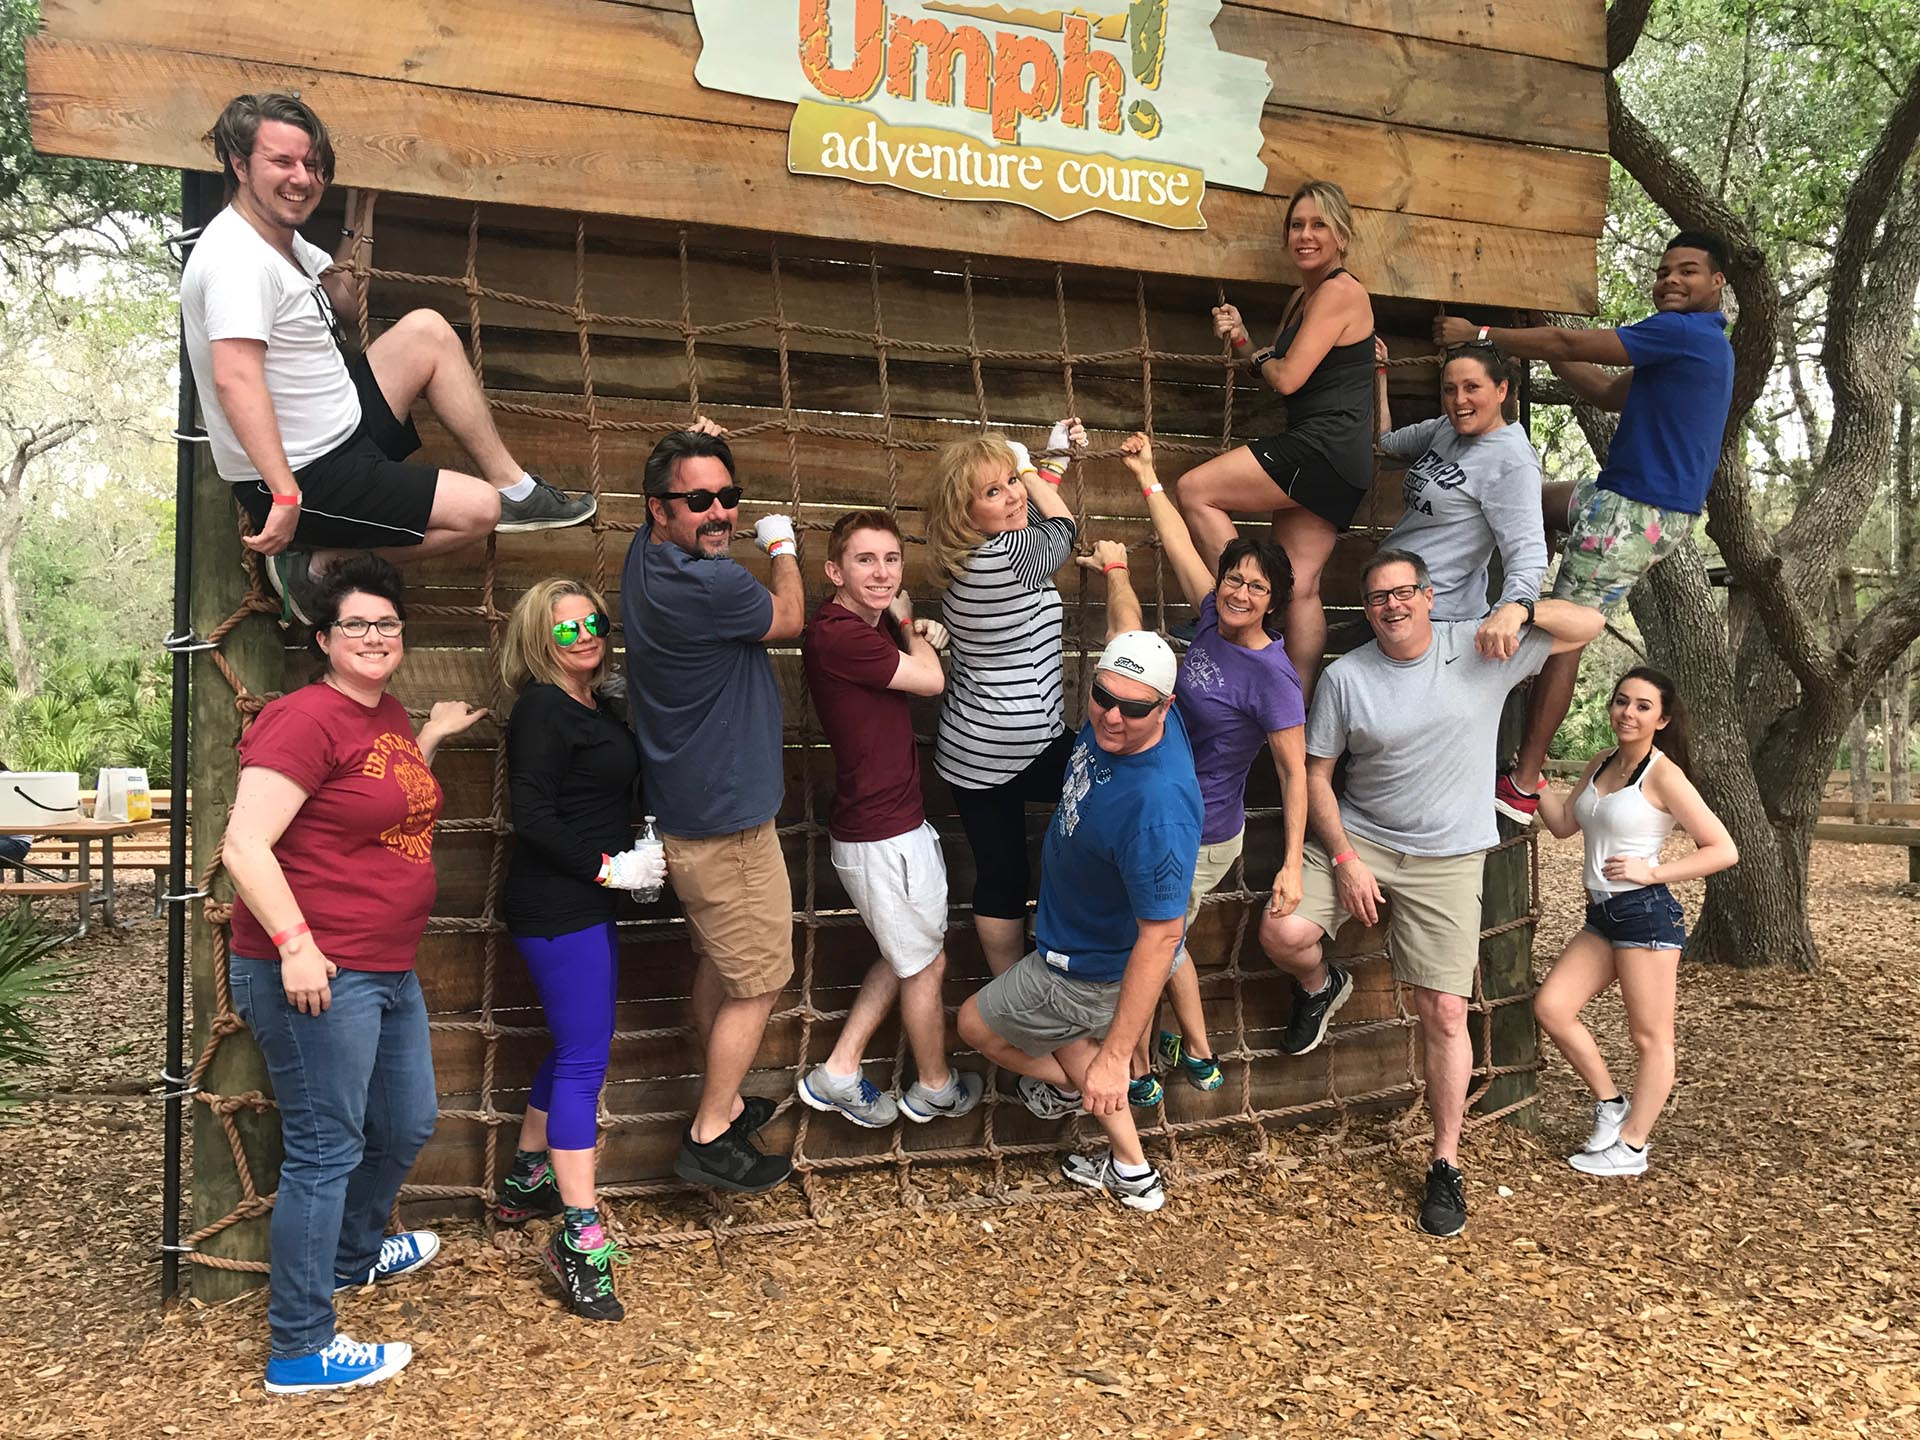 team-building-events-bradenton.jpg